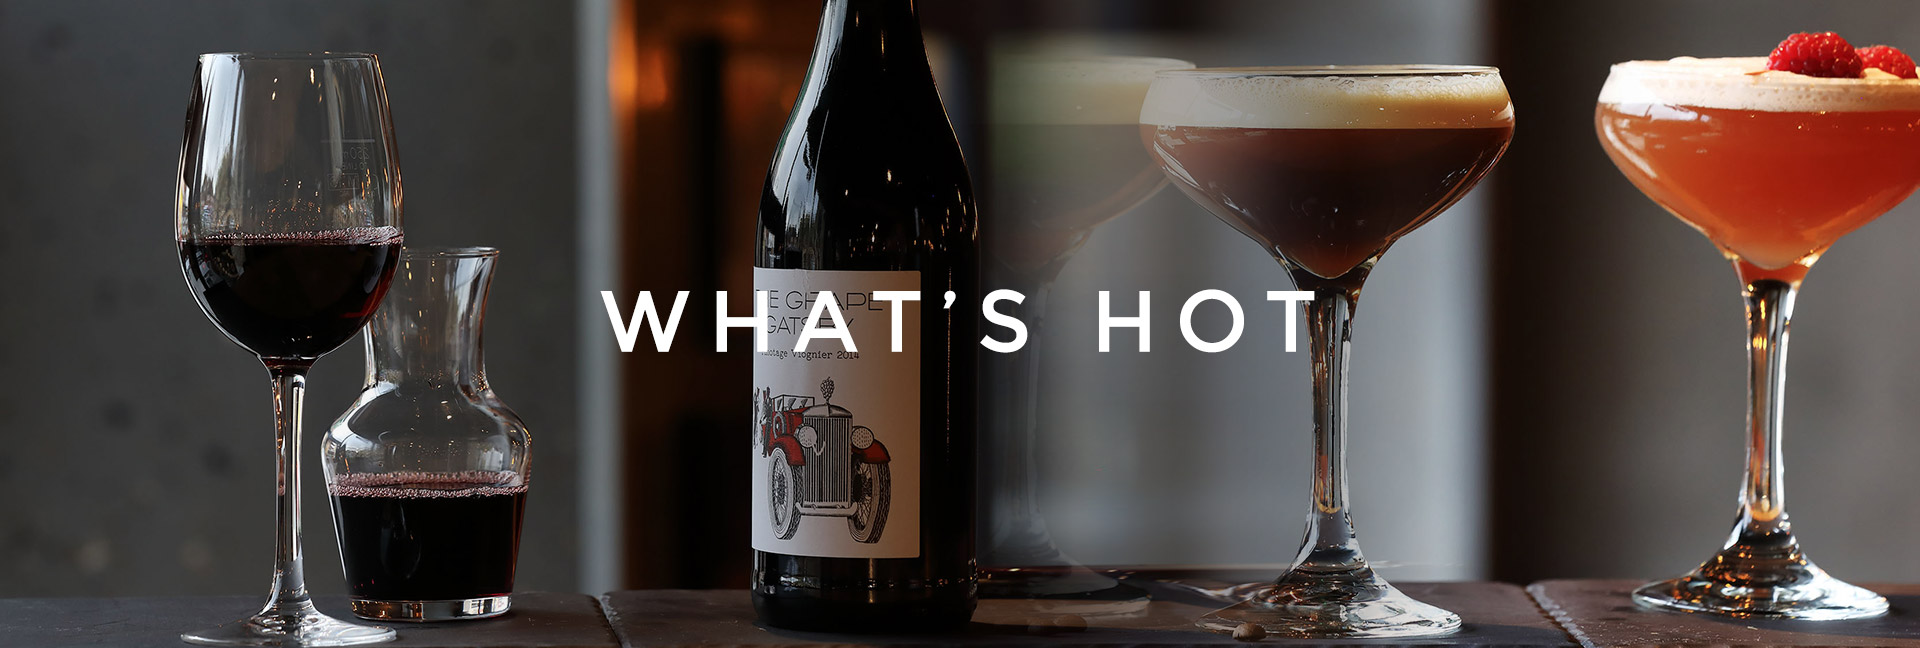 What's Hot at All Bar One Houndsditch